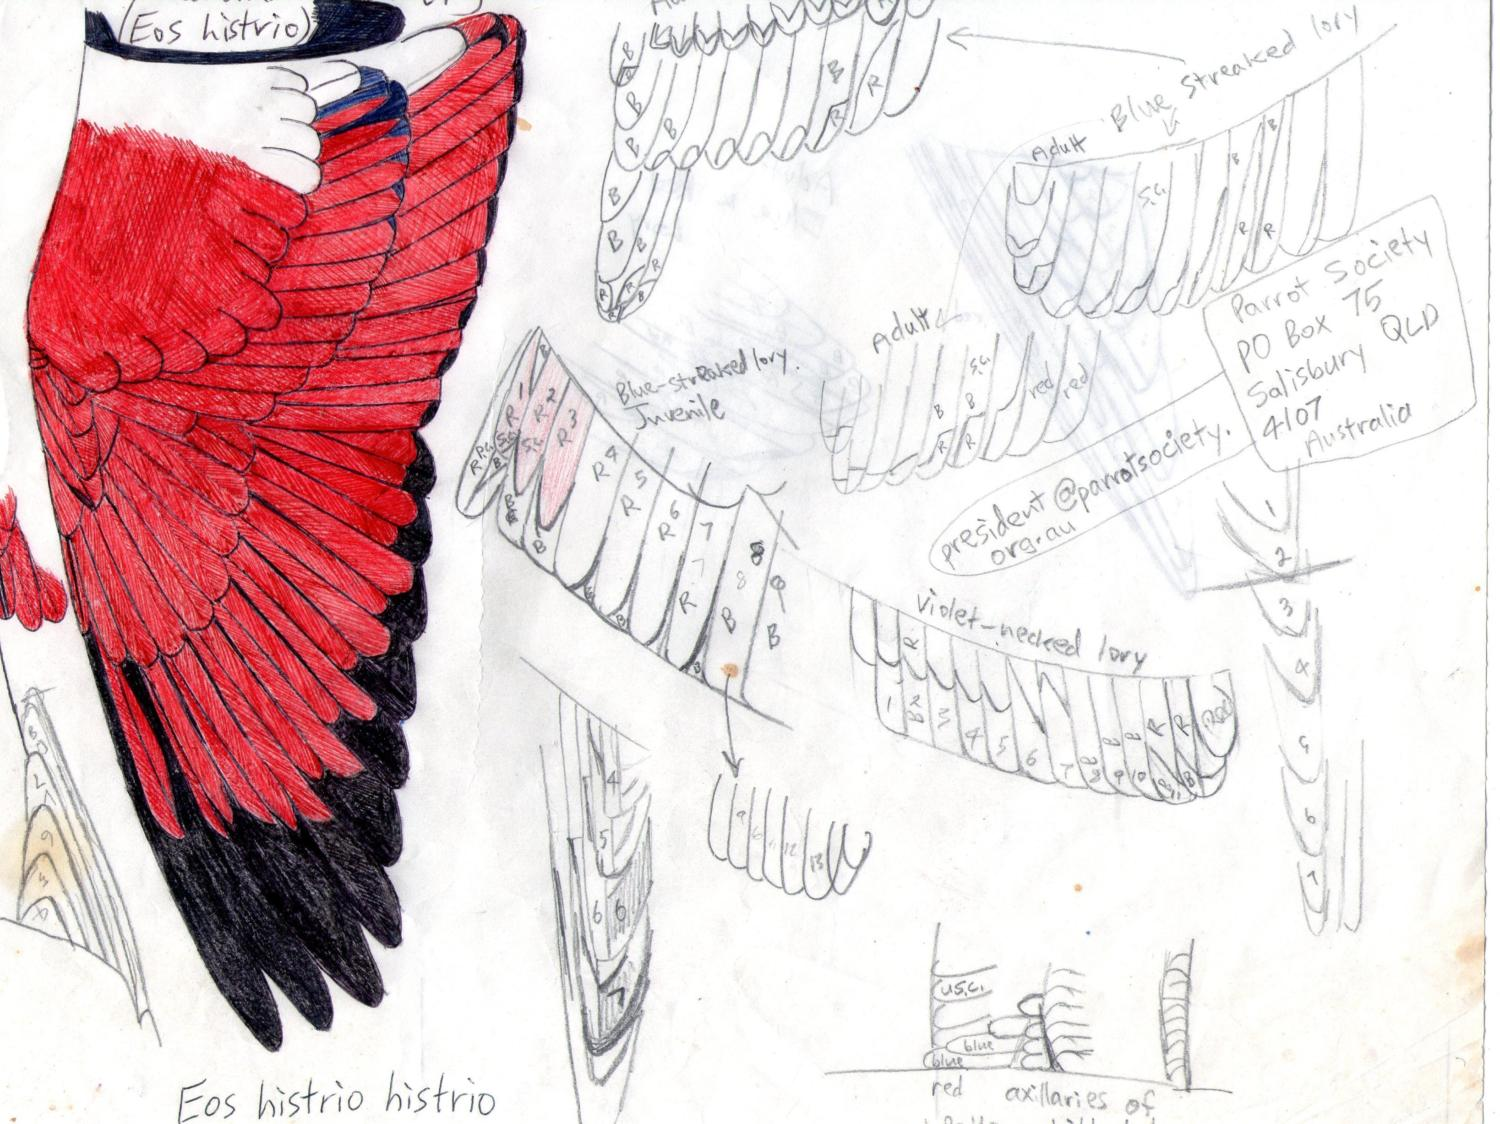 Wing of Blue and Red lory (eos histrio histrio)